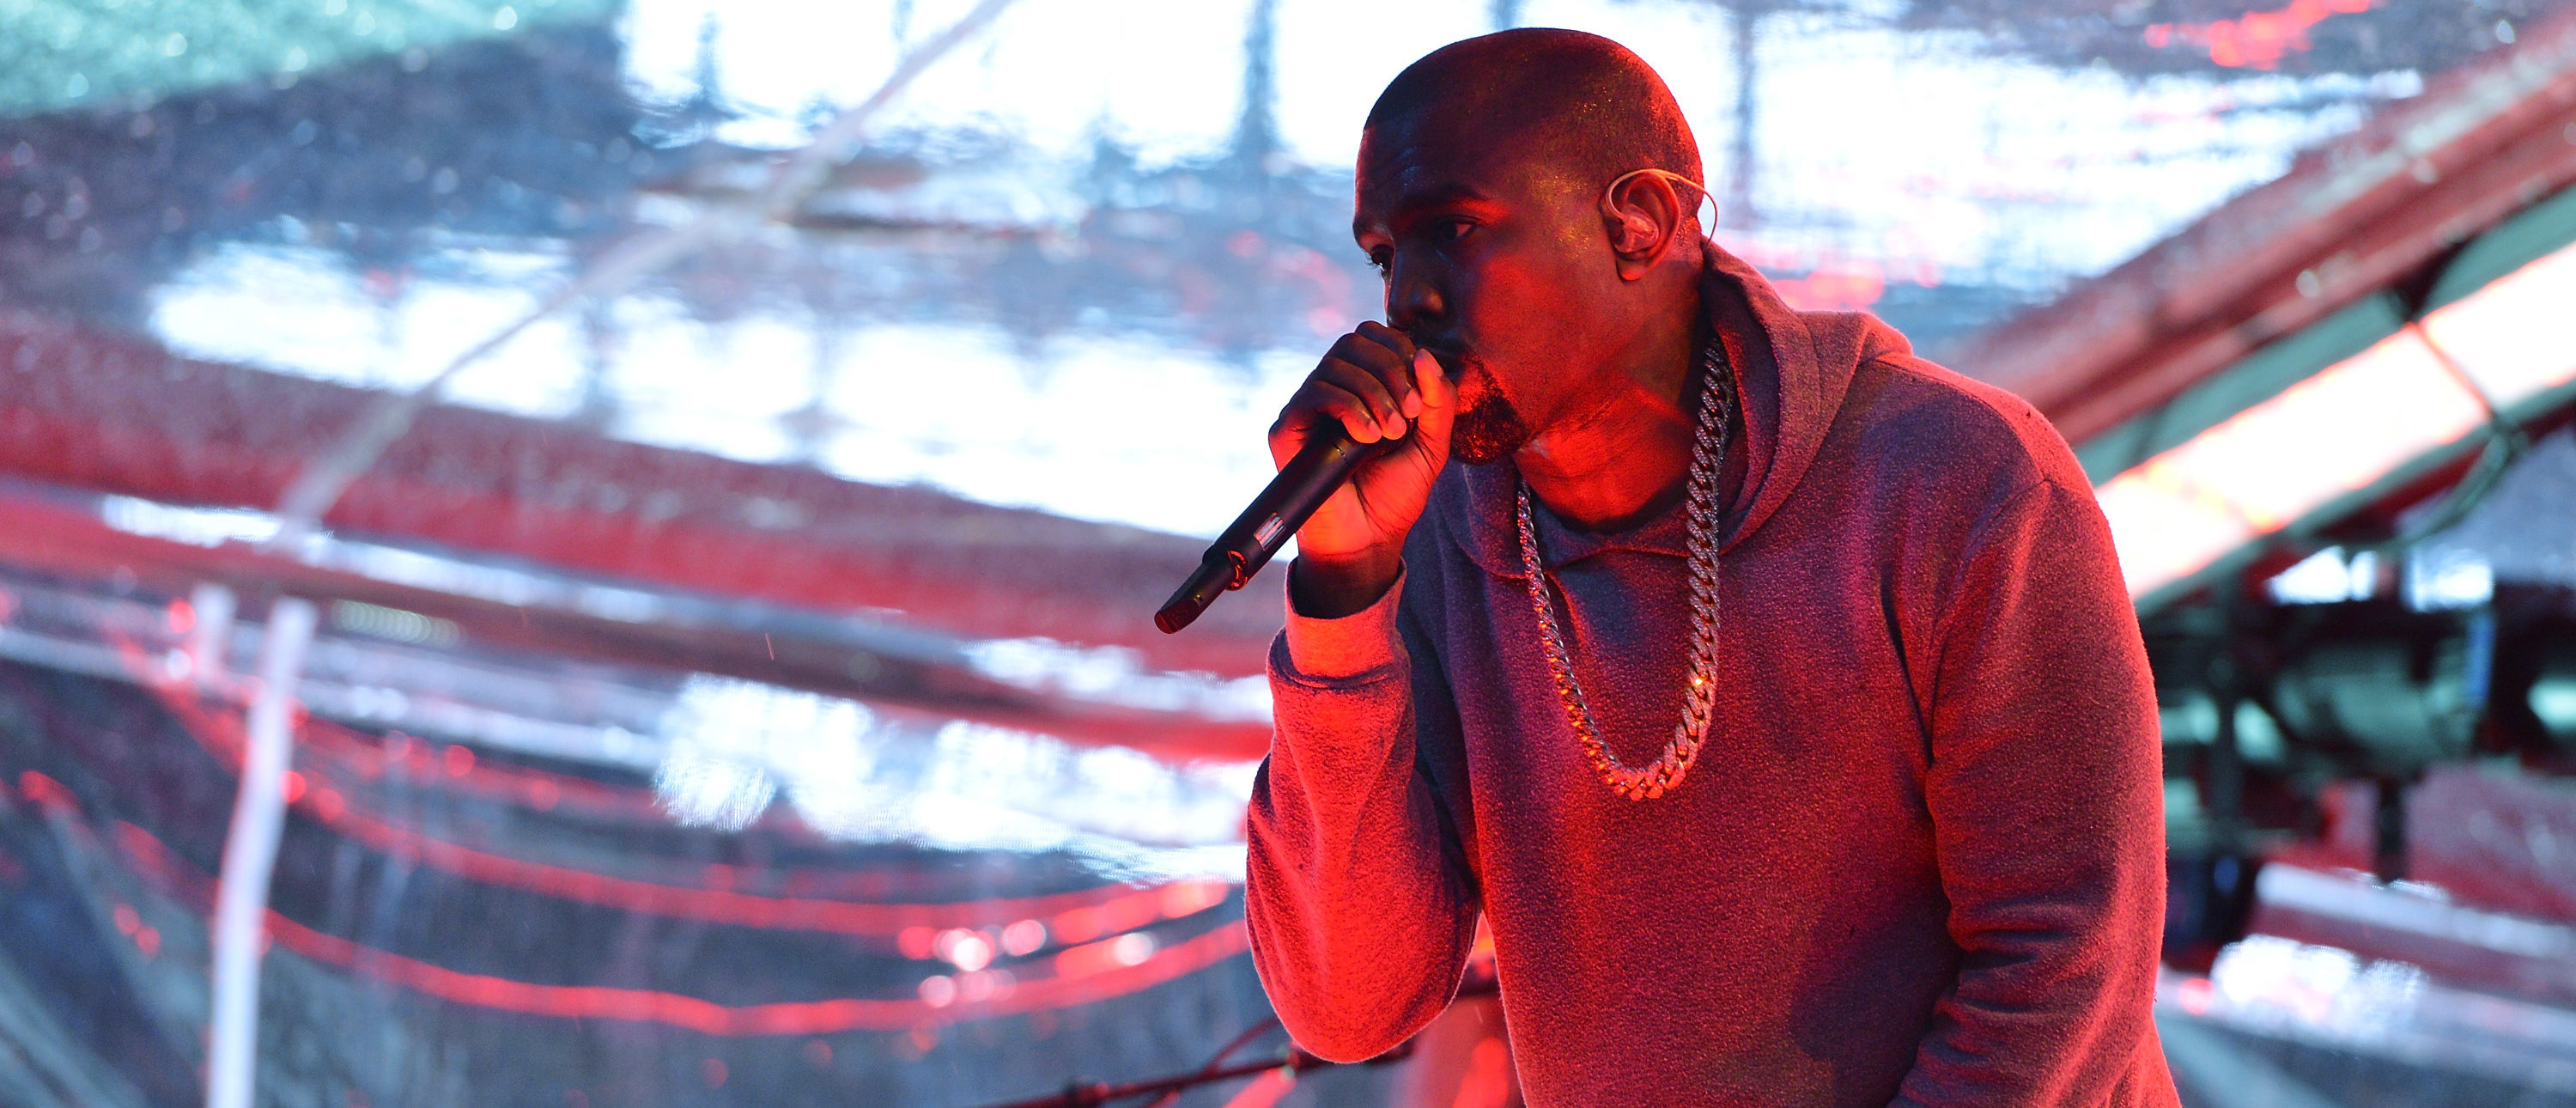 NEW YORK, NY - DEC. 01: Rapper Kanye West performs on World AIDS Day at 'A (RED) Thank You,' presented by (Bank of America) RED on Dec. 1, 2014 in New York City. (Photo by Slaven Vlasic/Getty Images for (RED))